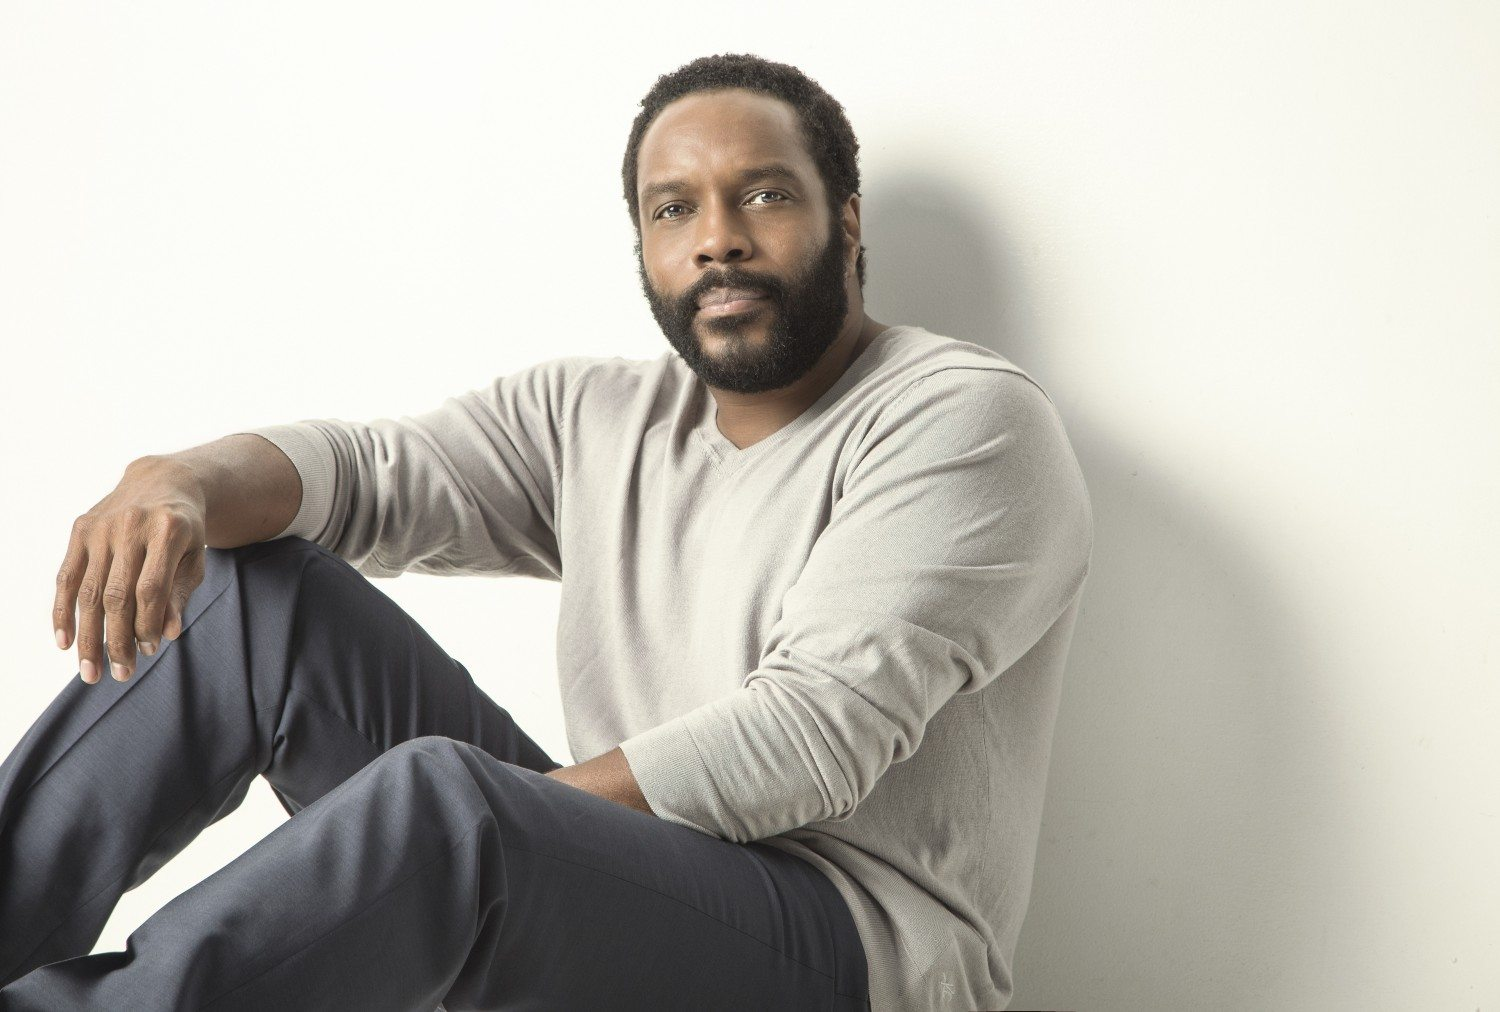 Chad L. Coleman / Photo: Bobby Qullard